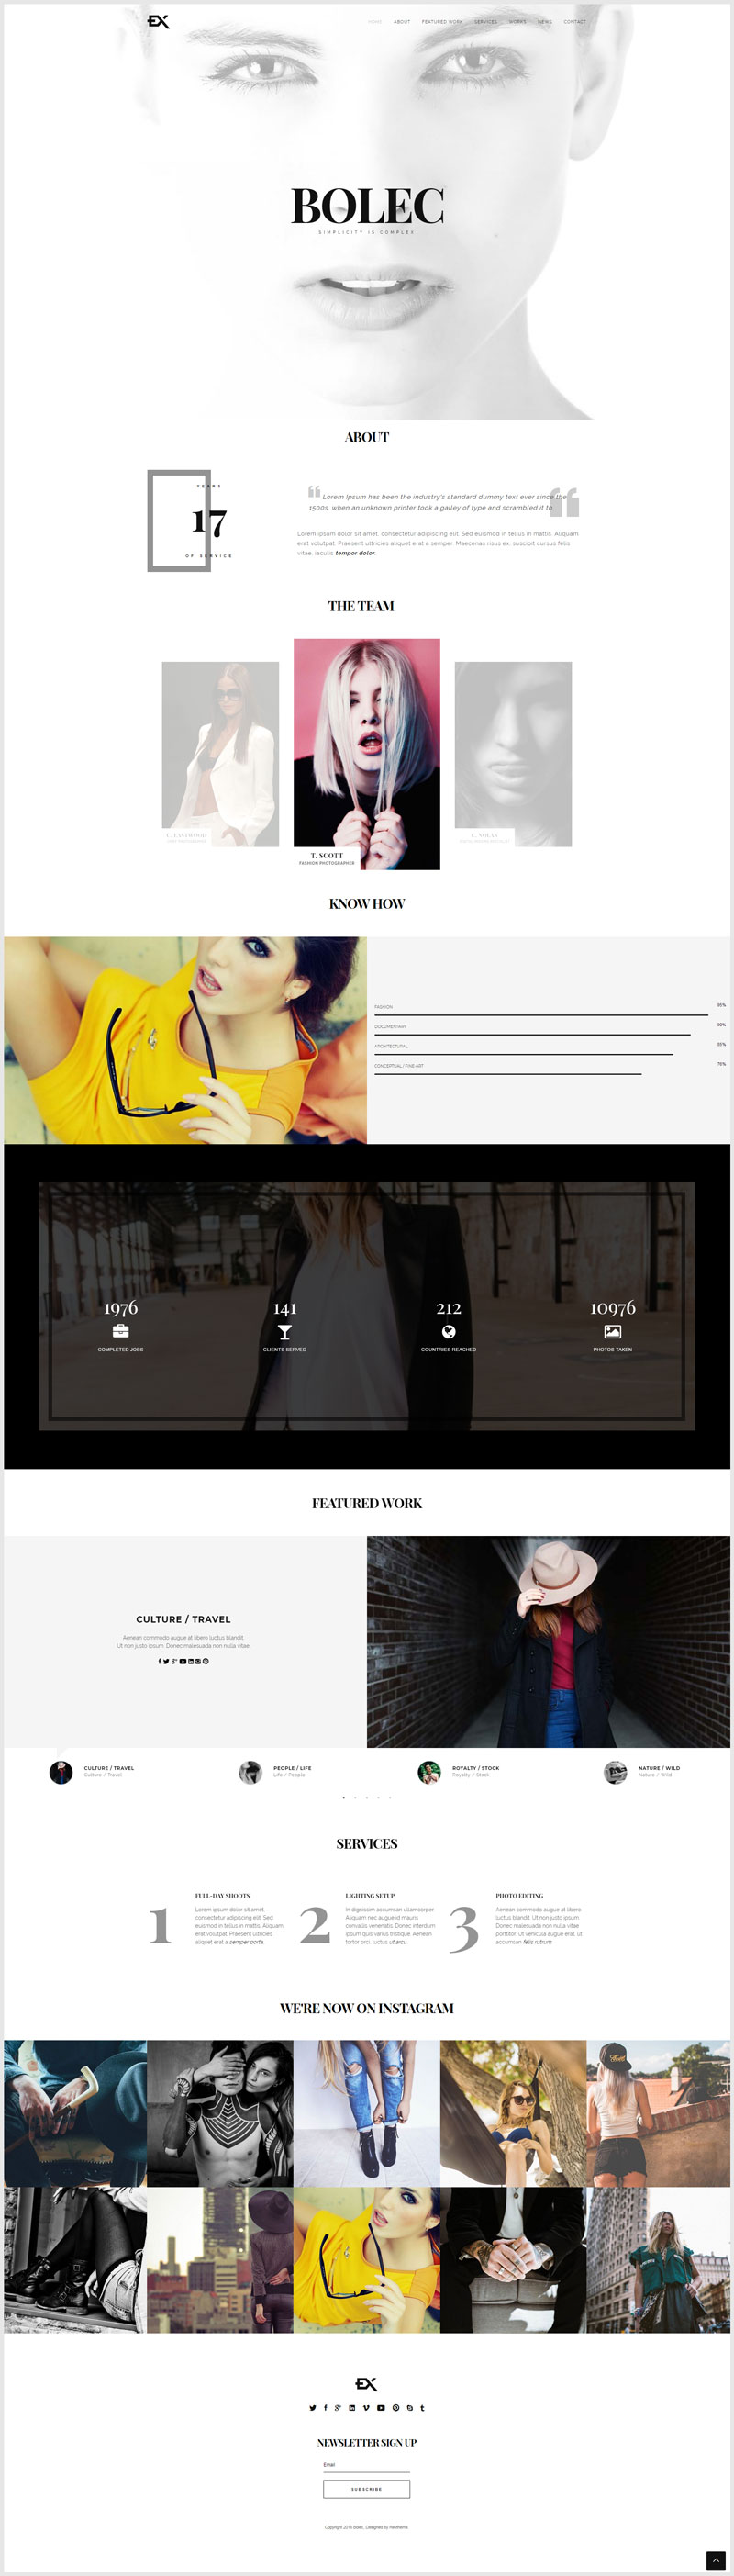 Bolec-Photography-&-Portfolio-WordPress-Theme